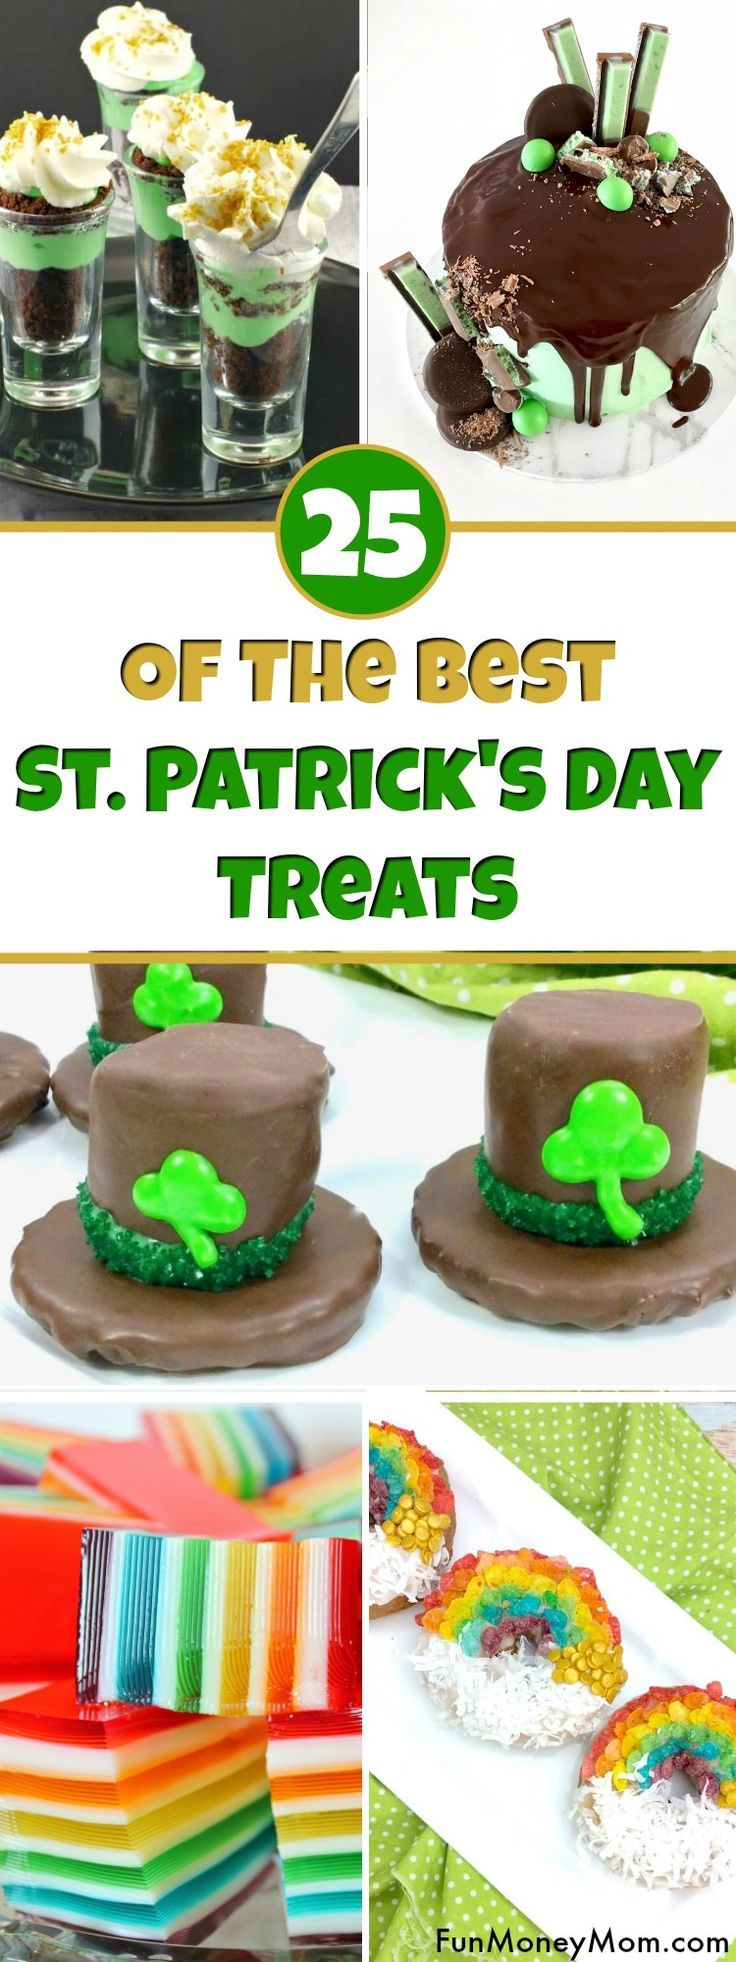 St. Patrick's Day Treat Ideas - Looking for the best St. Patrick's Day recipes? From rainbow food to marshmallow leprechaun hats, these yummy St. Patrick's Day recipes will have you covered. #StPatricksDay #StPatricksDayFood #StPatricksDayTreats #rainbowfood via @funmoneymom